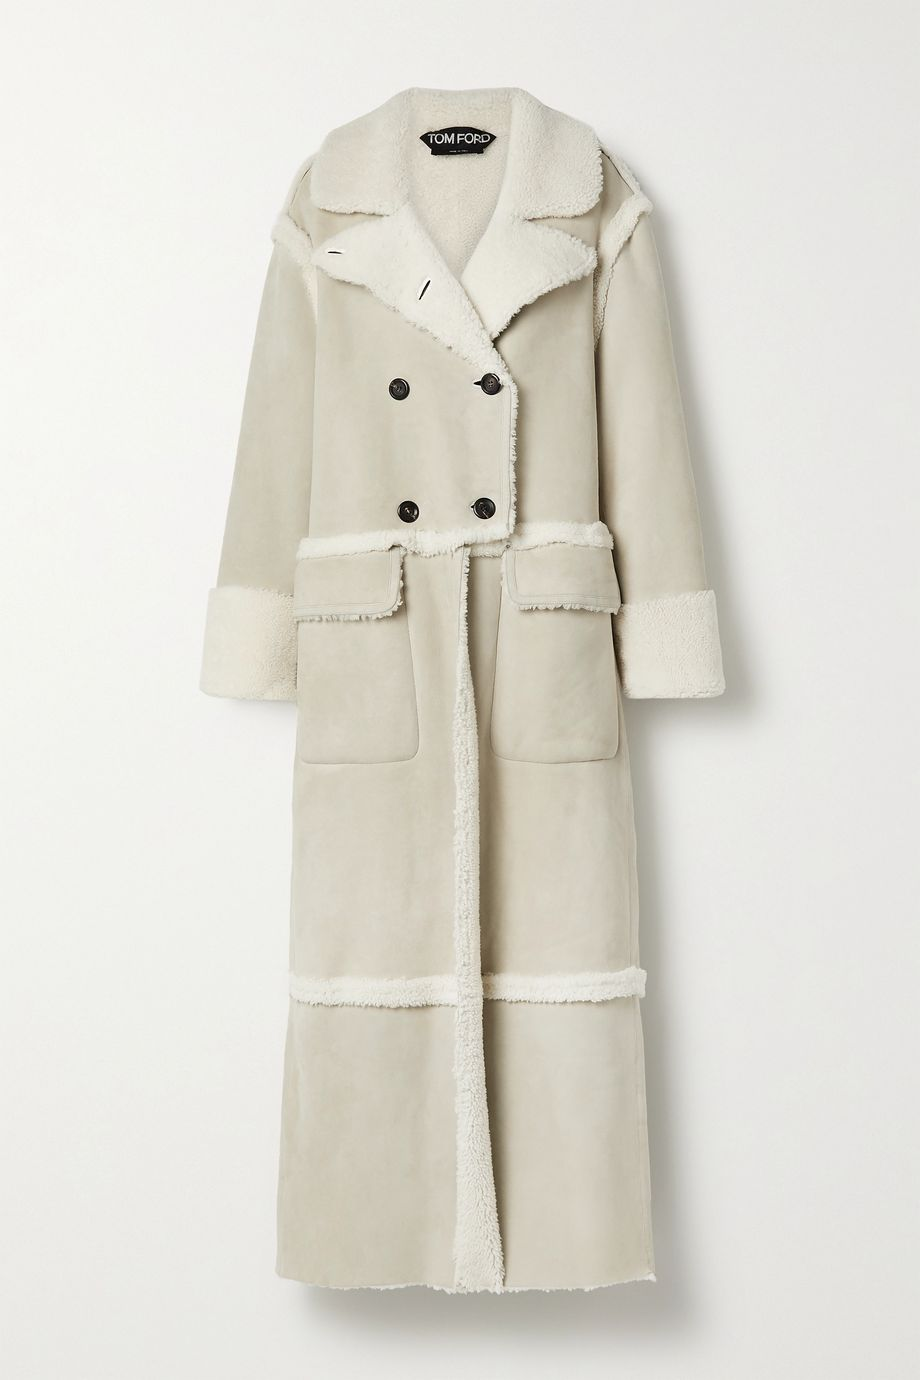 TOM FORD Double-breasted shearling coat